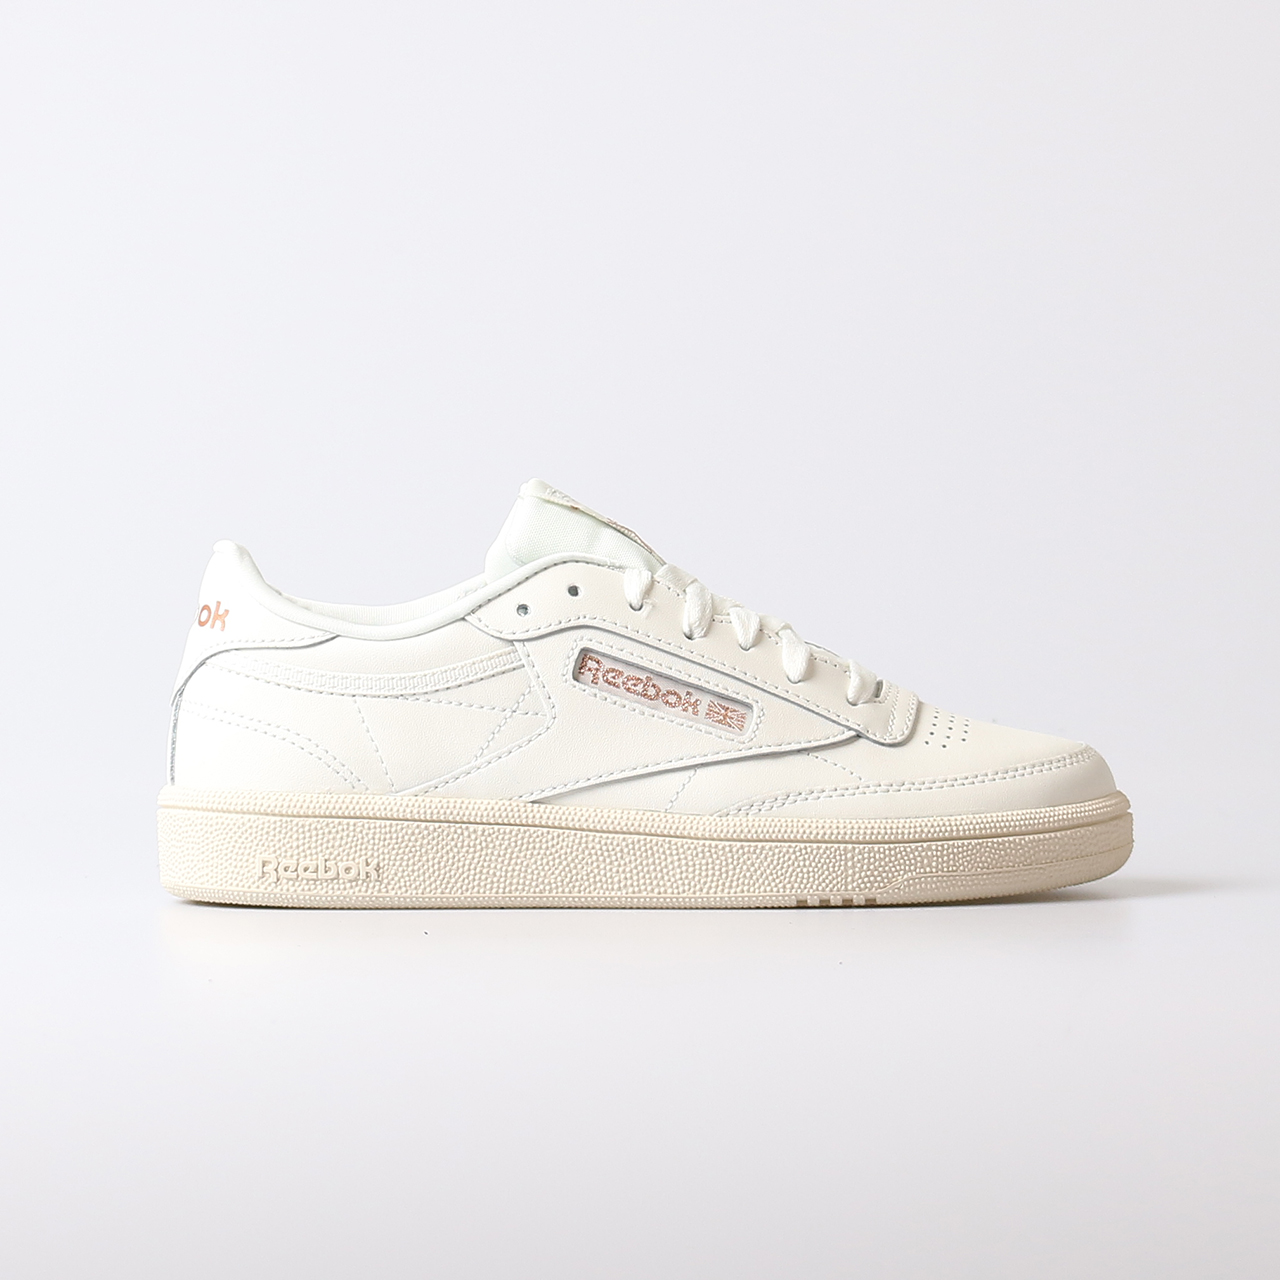 f4e2d1d3a33 Home / Sneakers / REEBOK Club C 85 Sneakers Dames